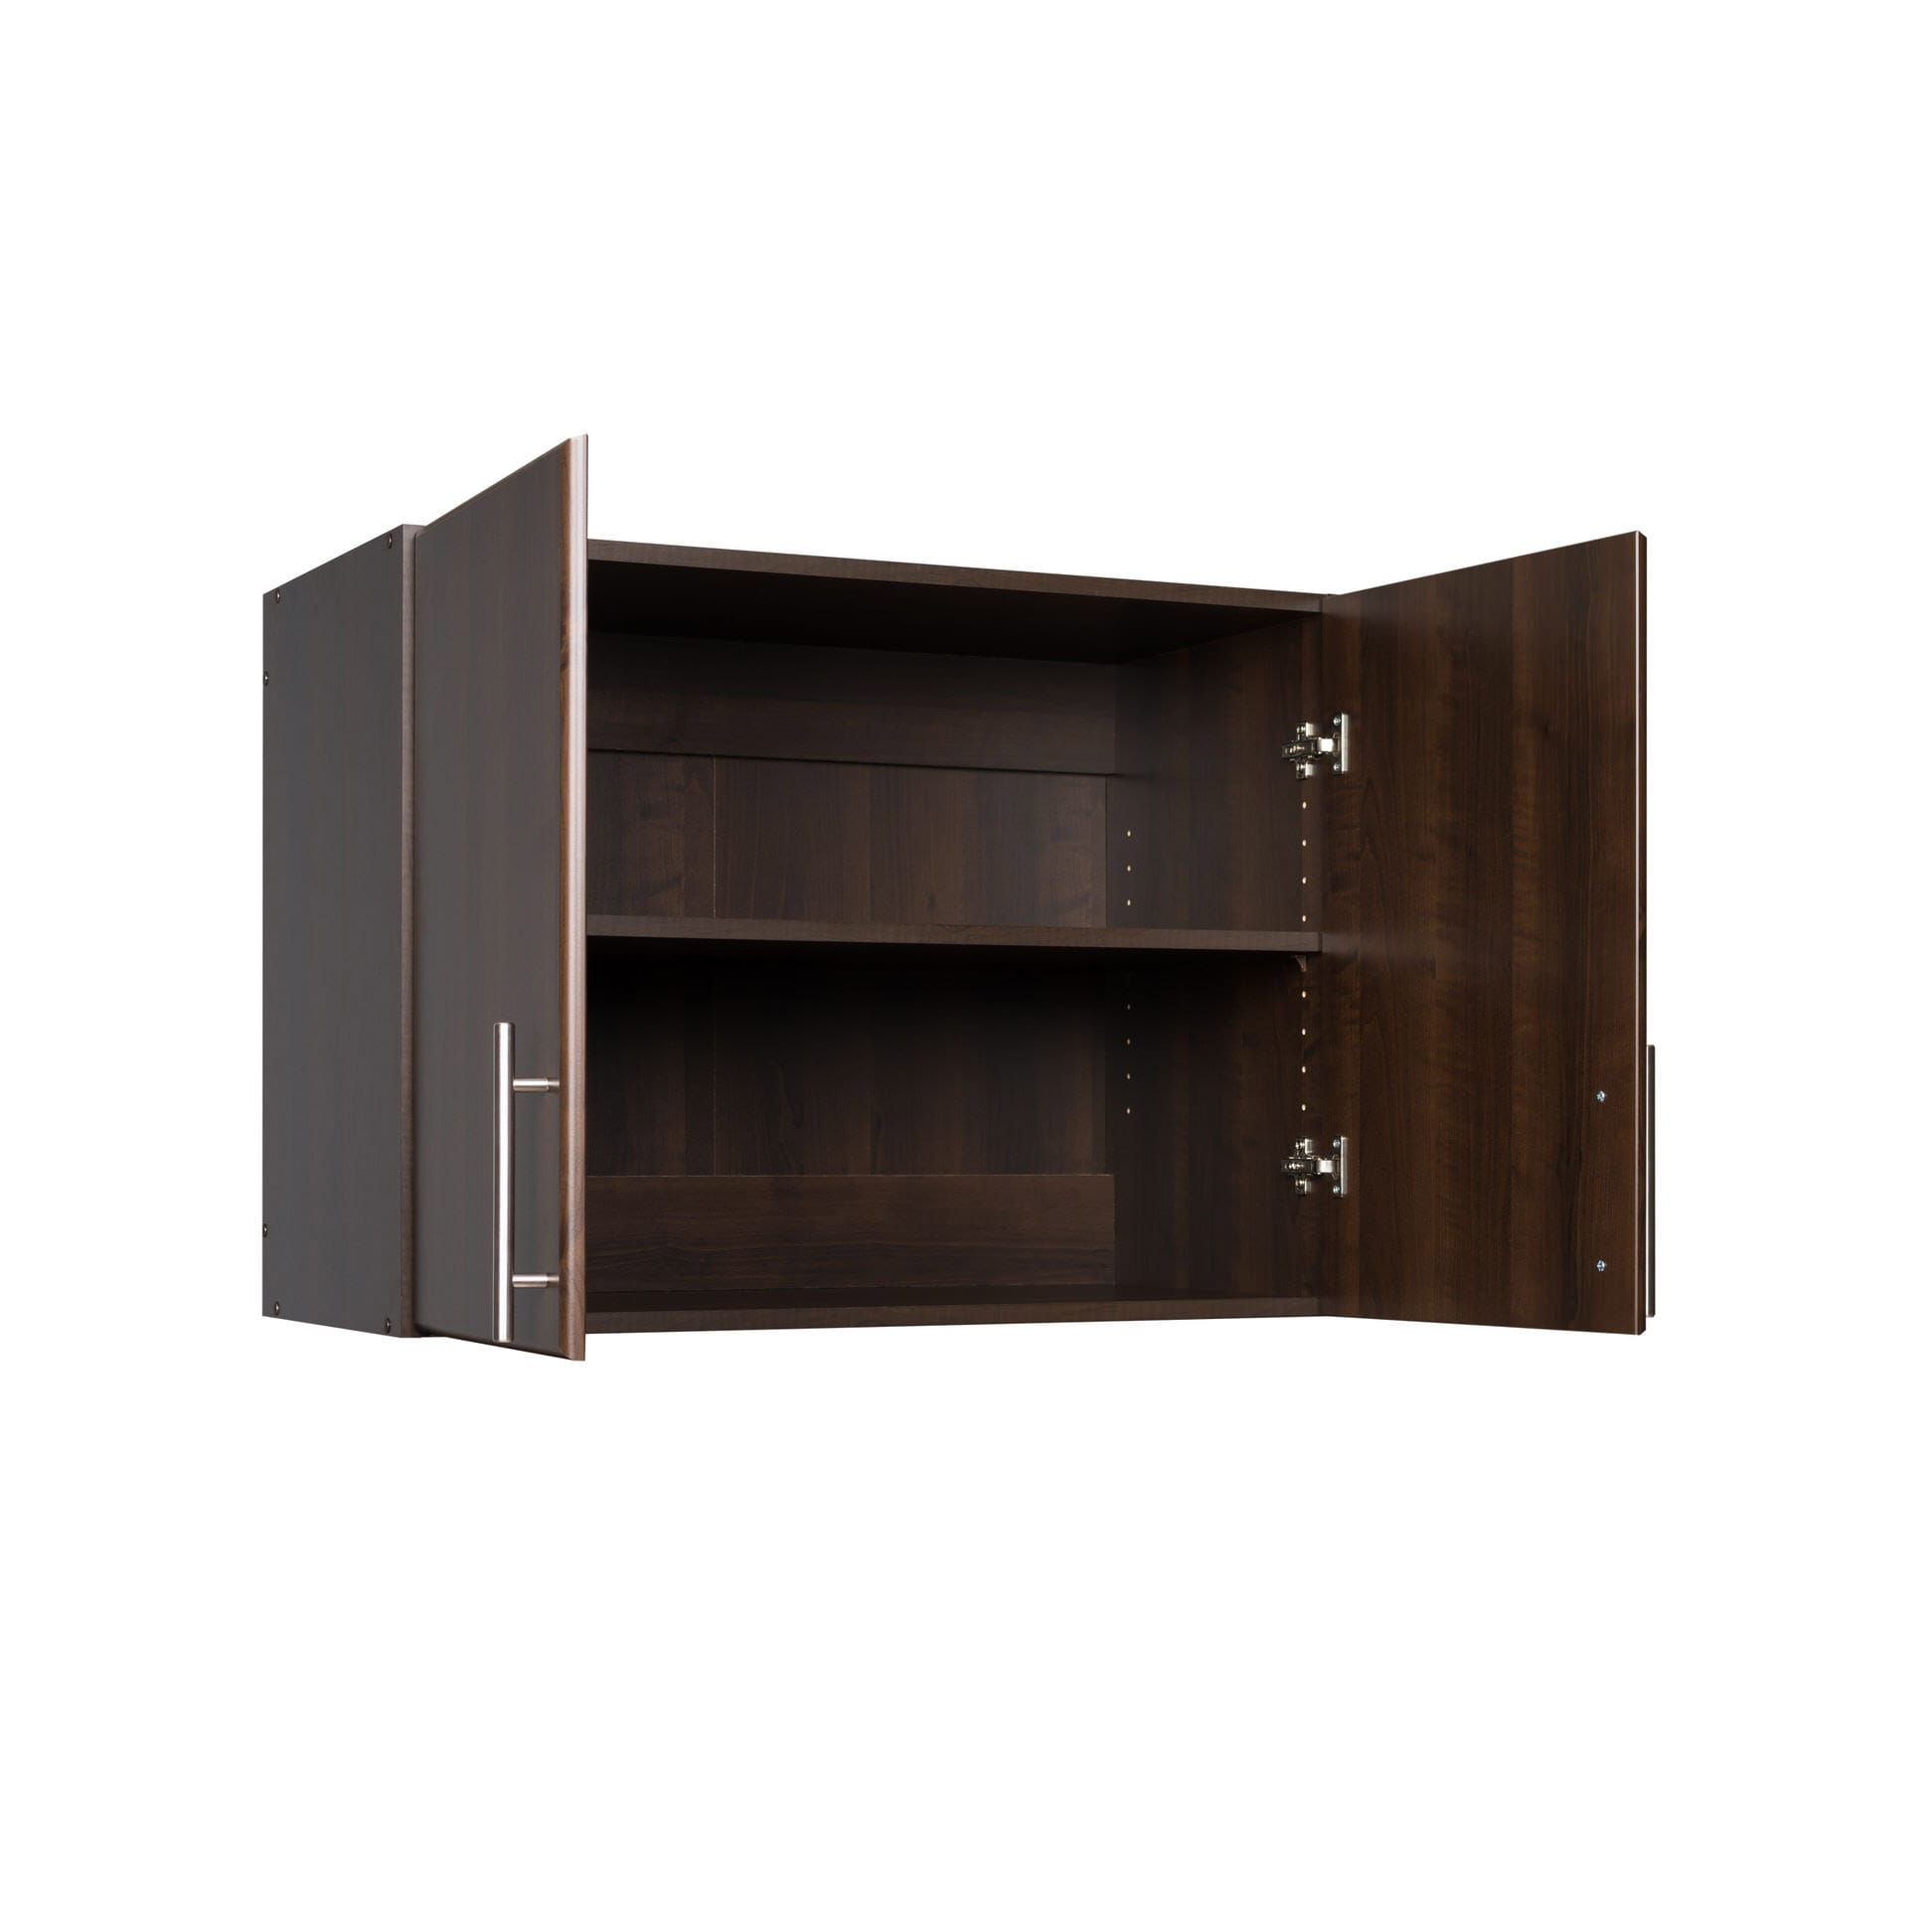 32 Kitchen Cabinet Elite 32 Inch Stackable Wall Cabinet Espresso By Prepac